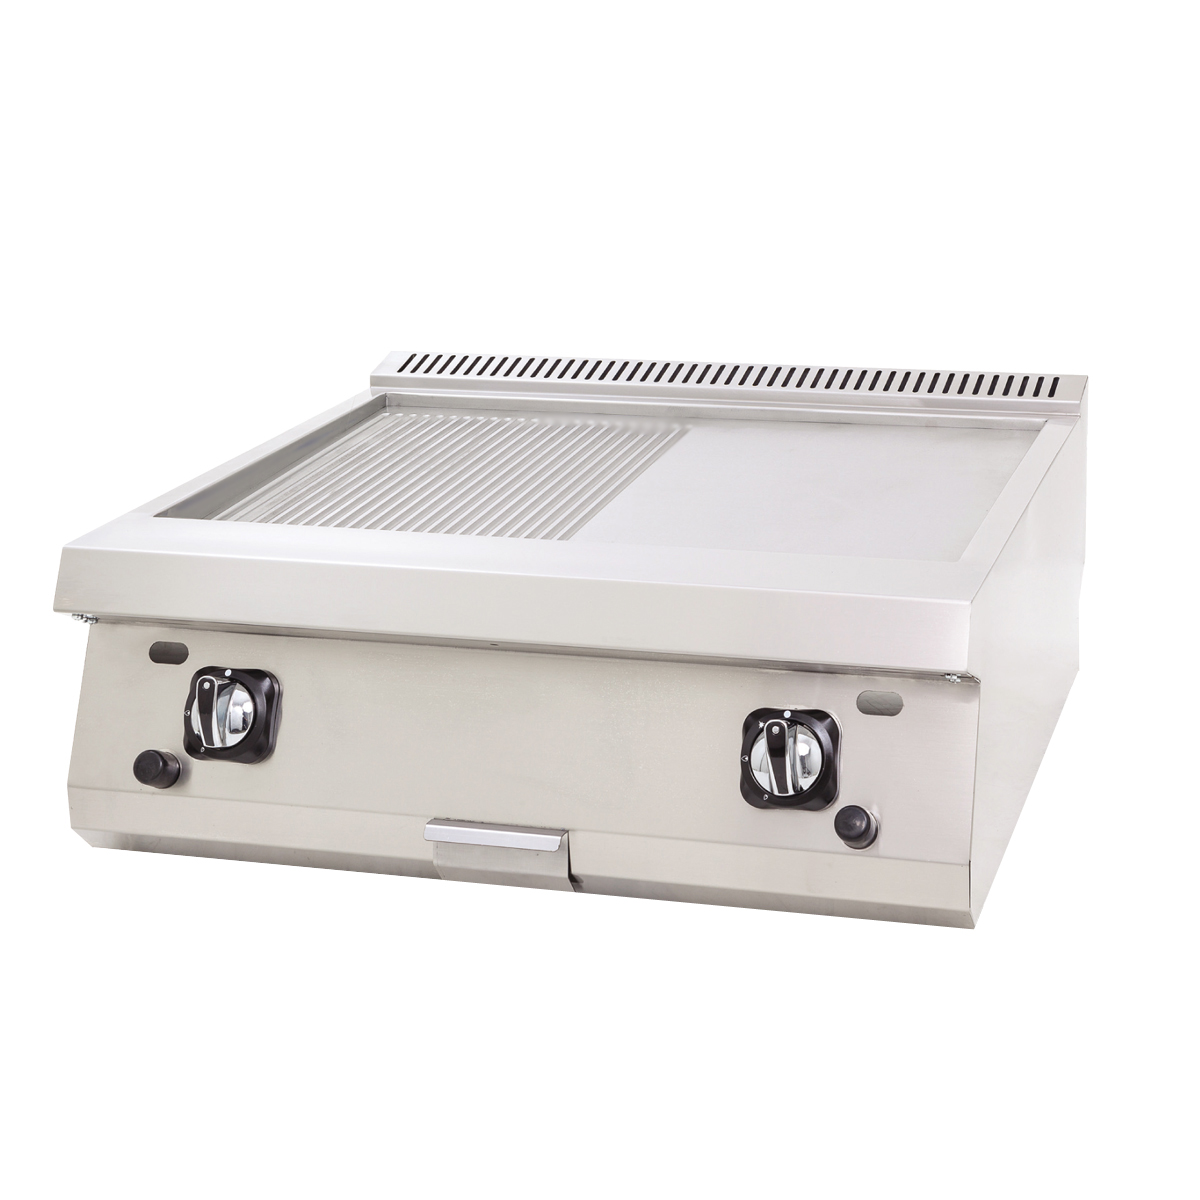 Gas Grill Flat+Grooved - 80x60